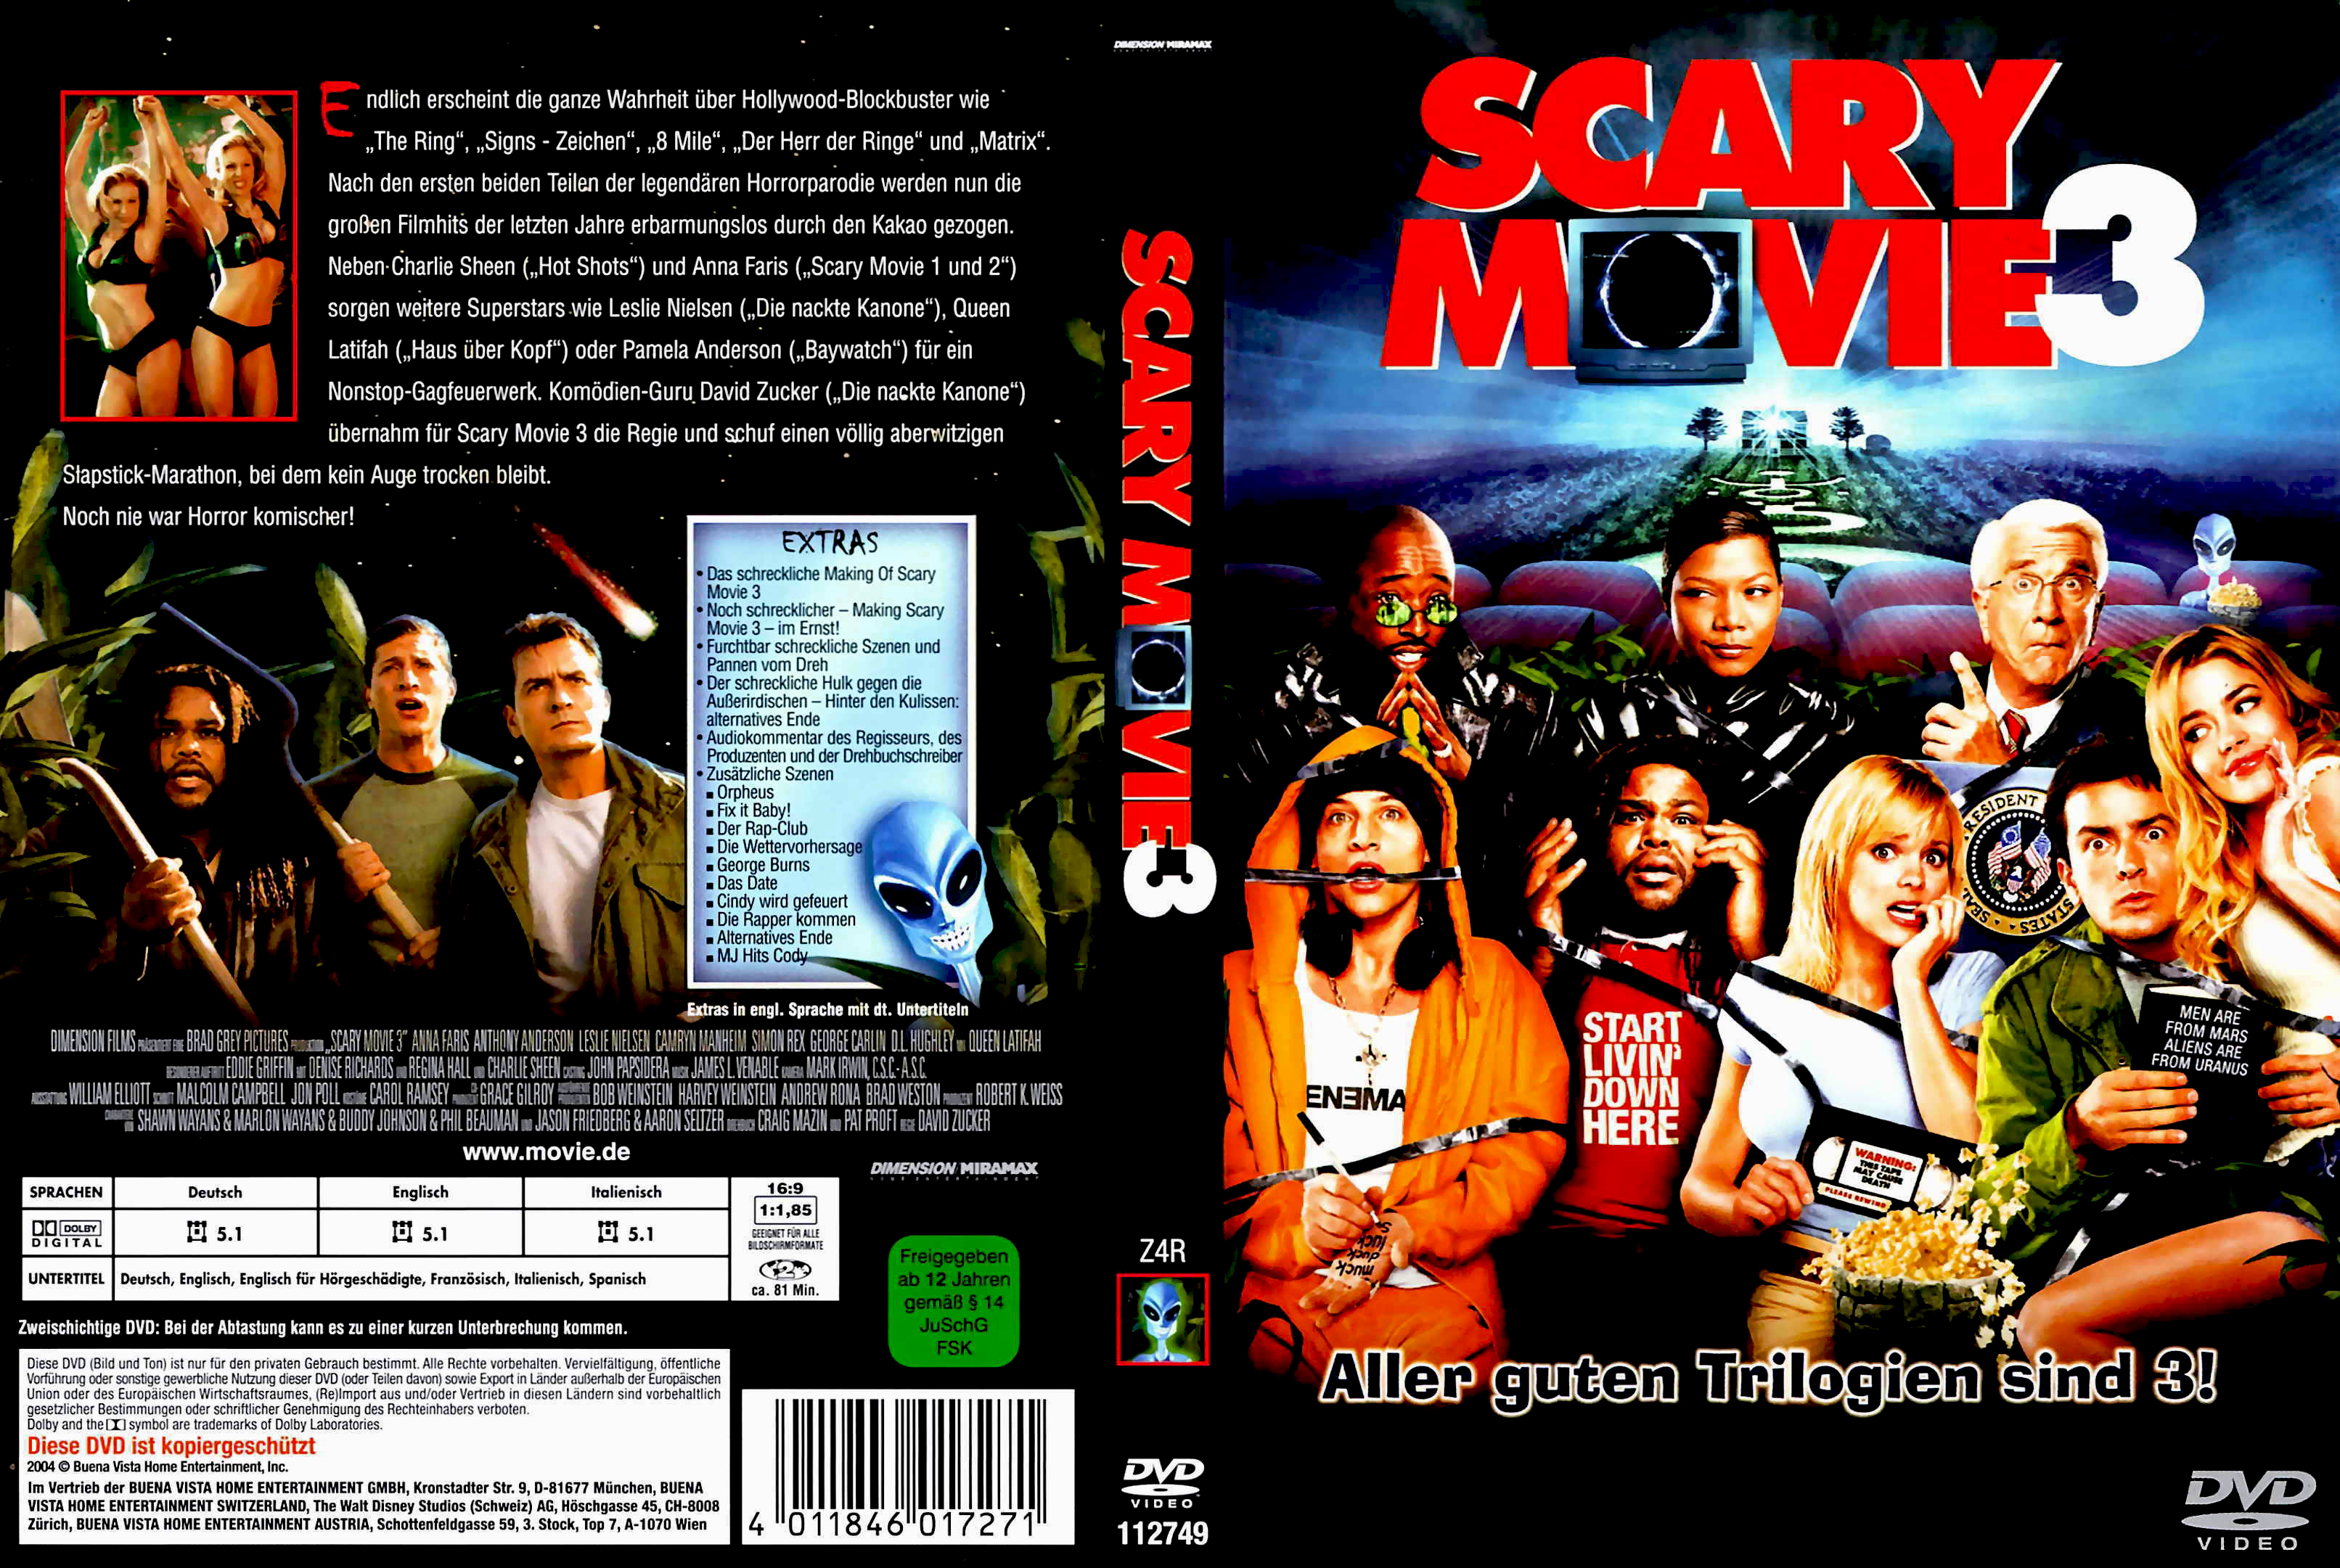 scary movie 3 dvd covers cover century over 500 000 album art